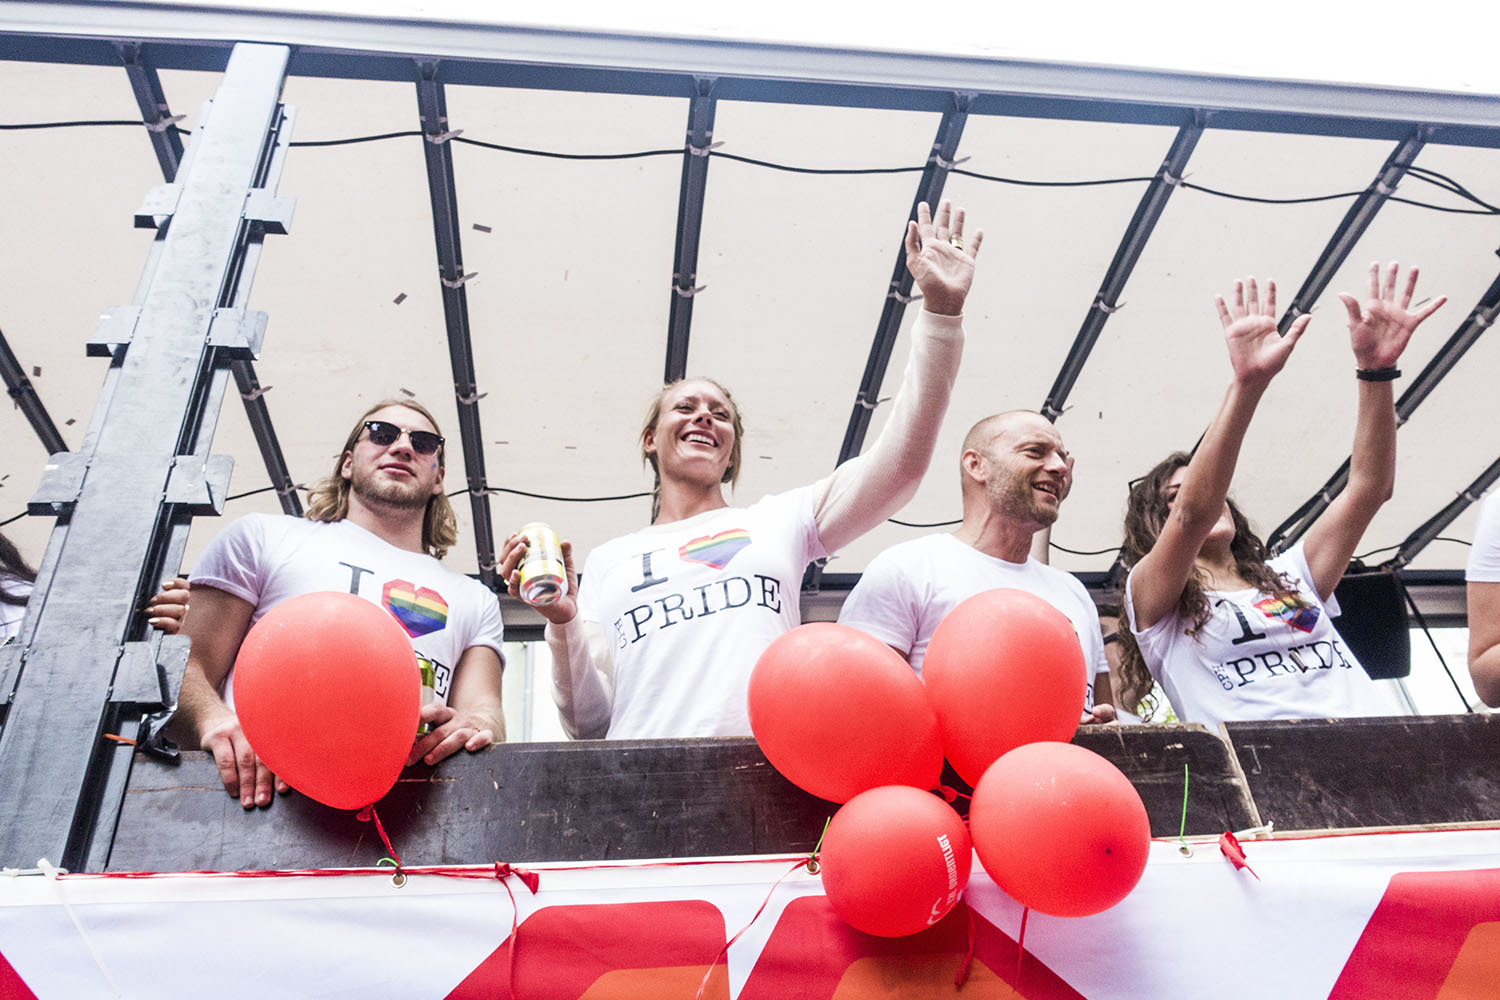 CphPride2016_HelenaLundquist_blog_16